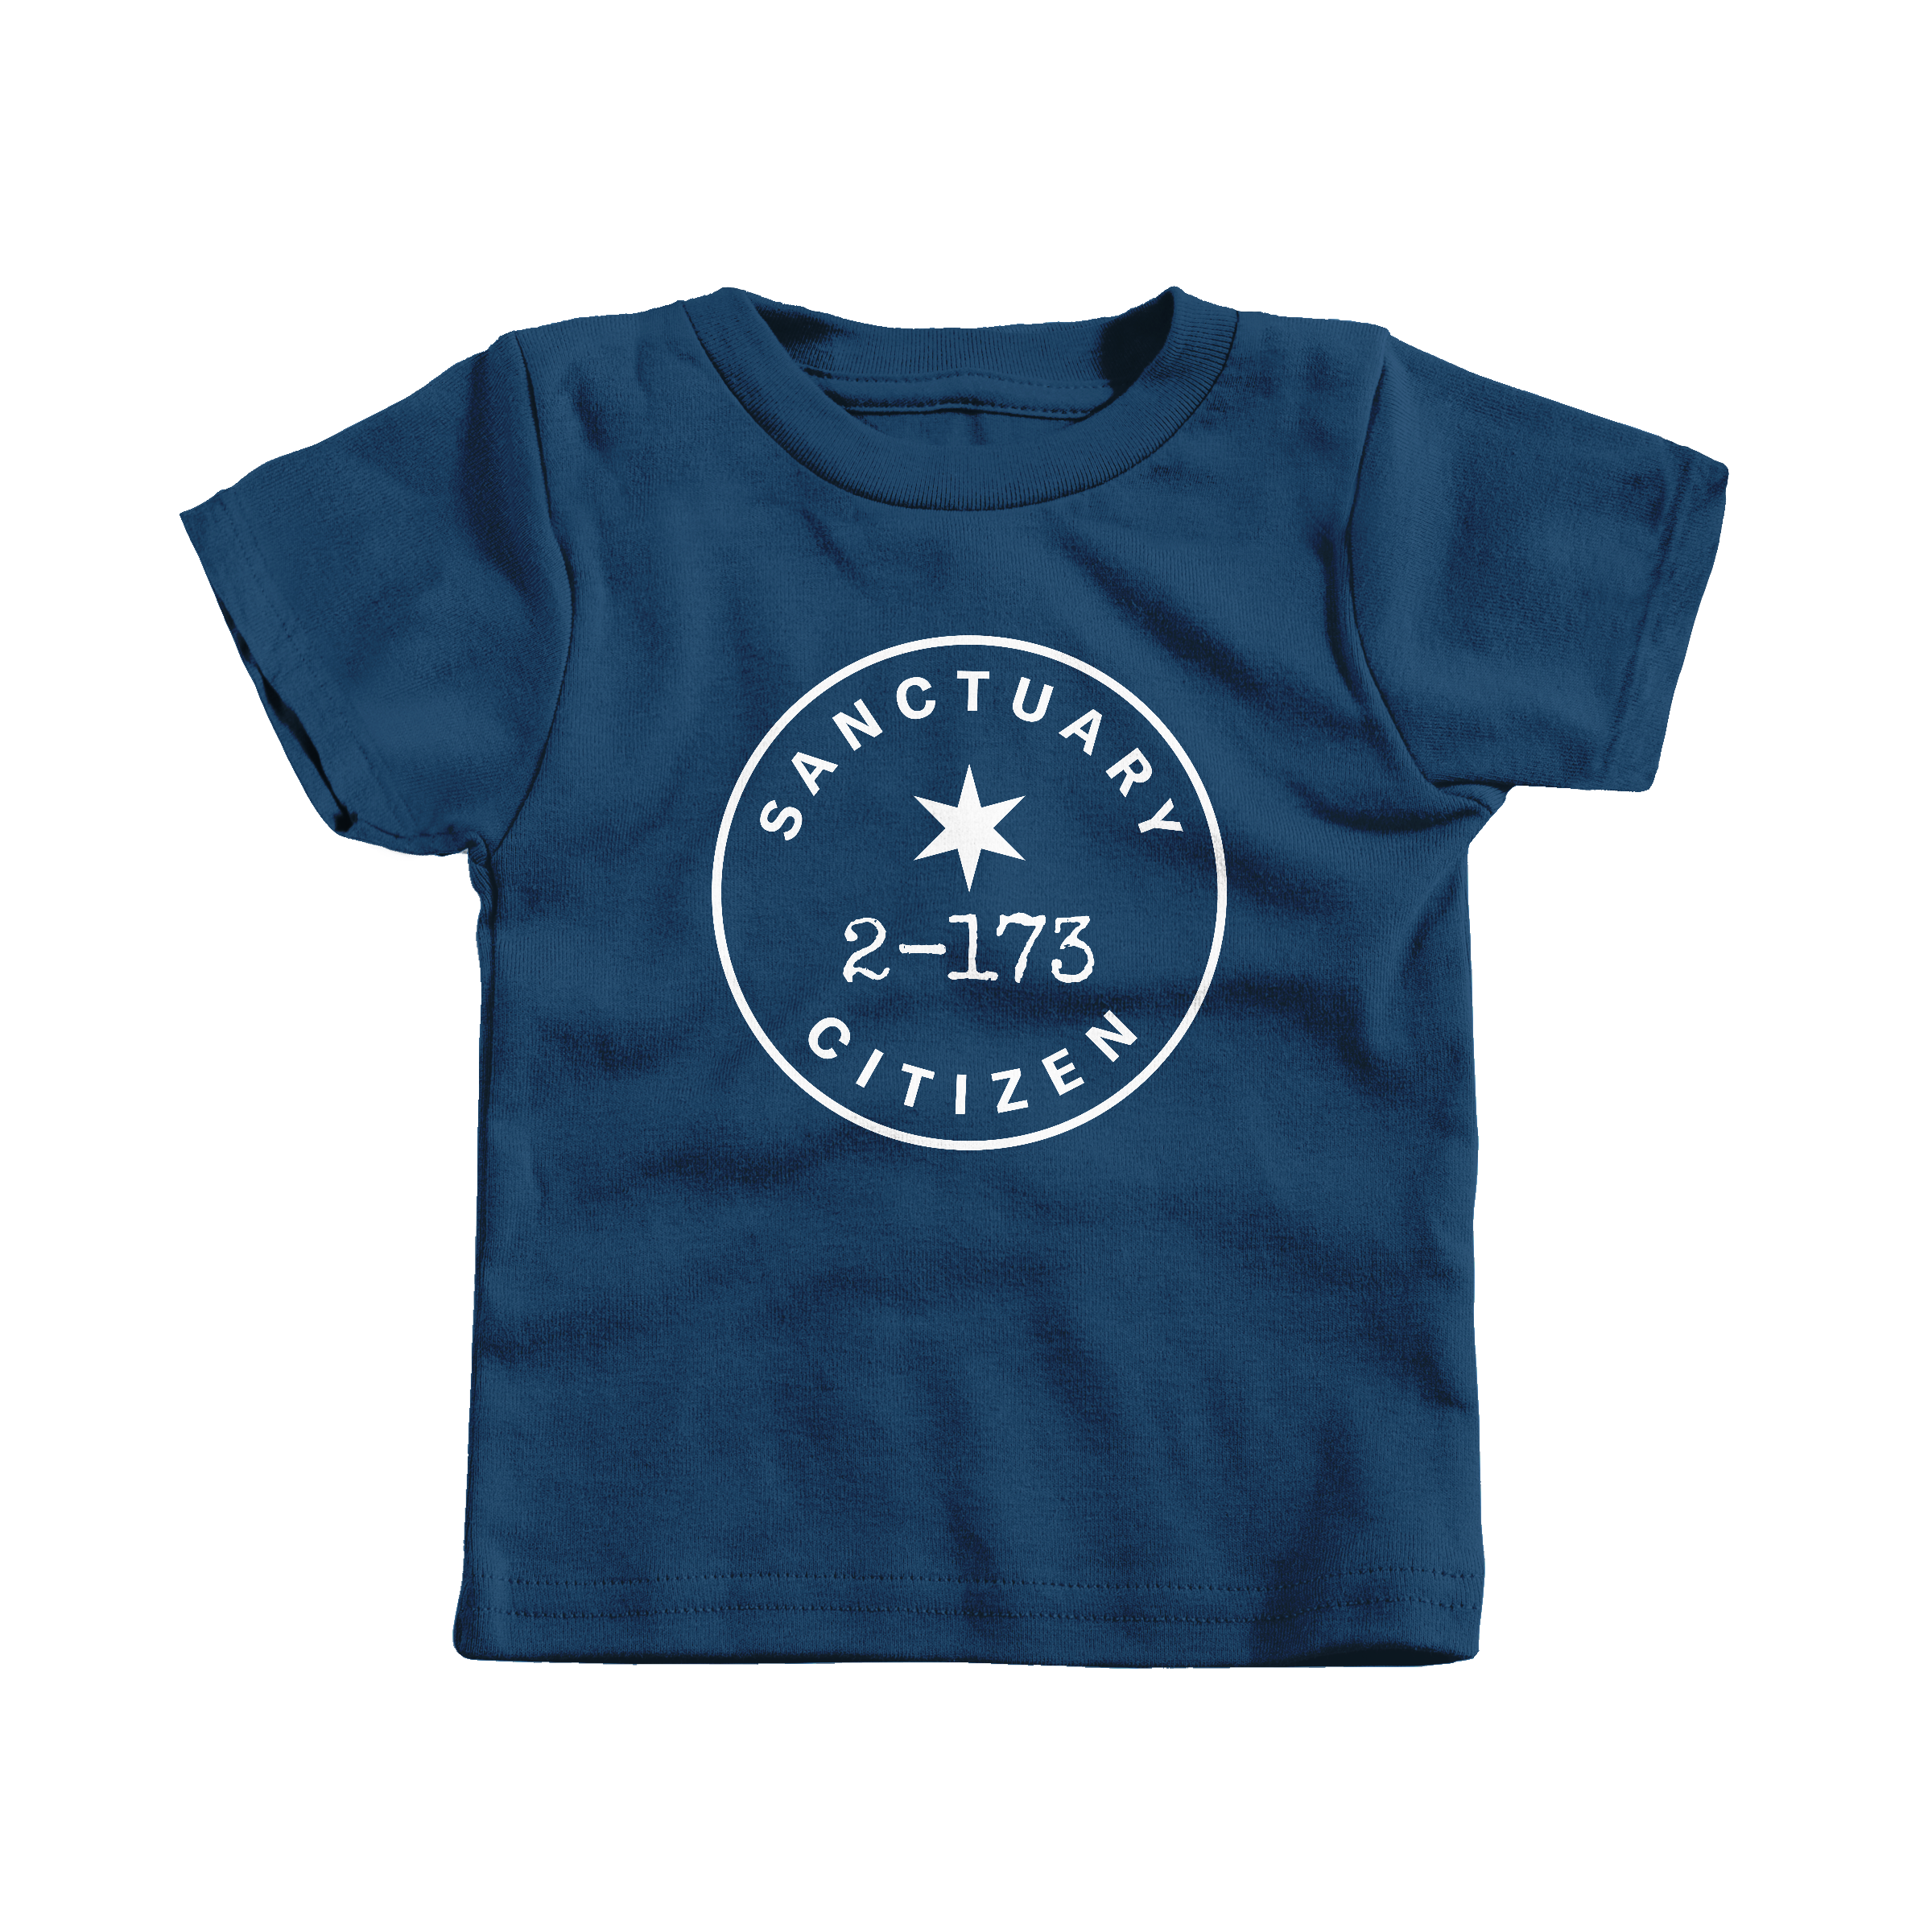 Sanctuary Citizen Navy (T-Shirt)